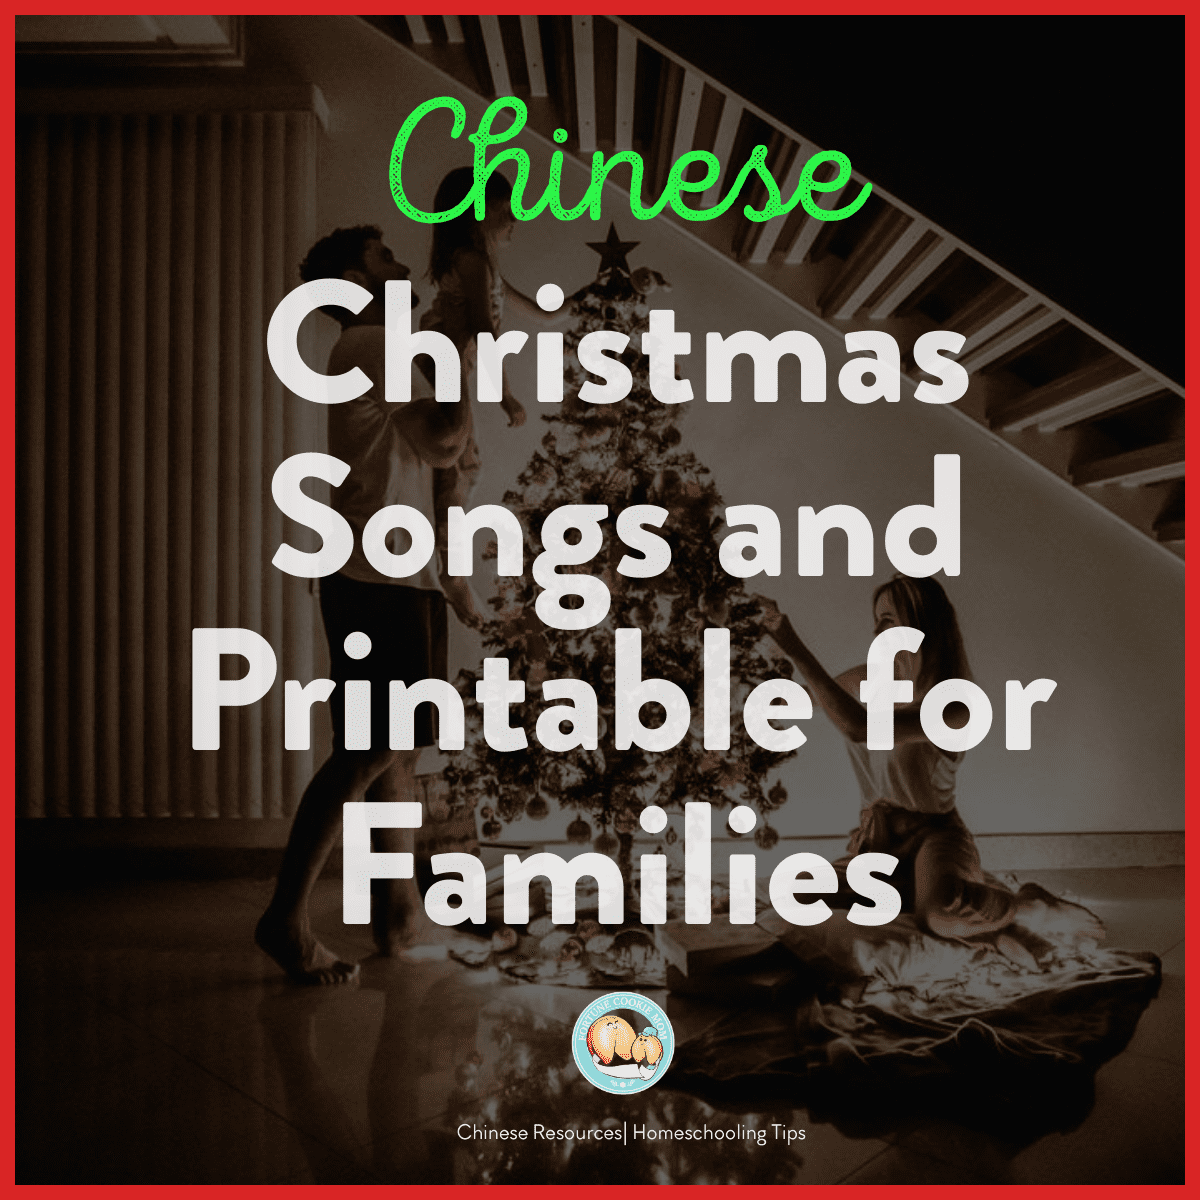 Chinese Christmas Songs and Printable for Families